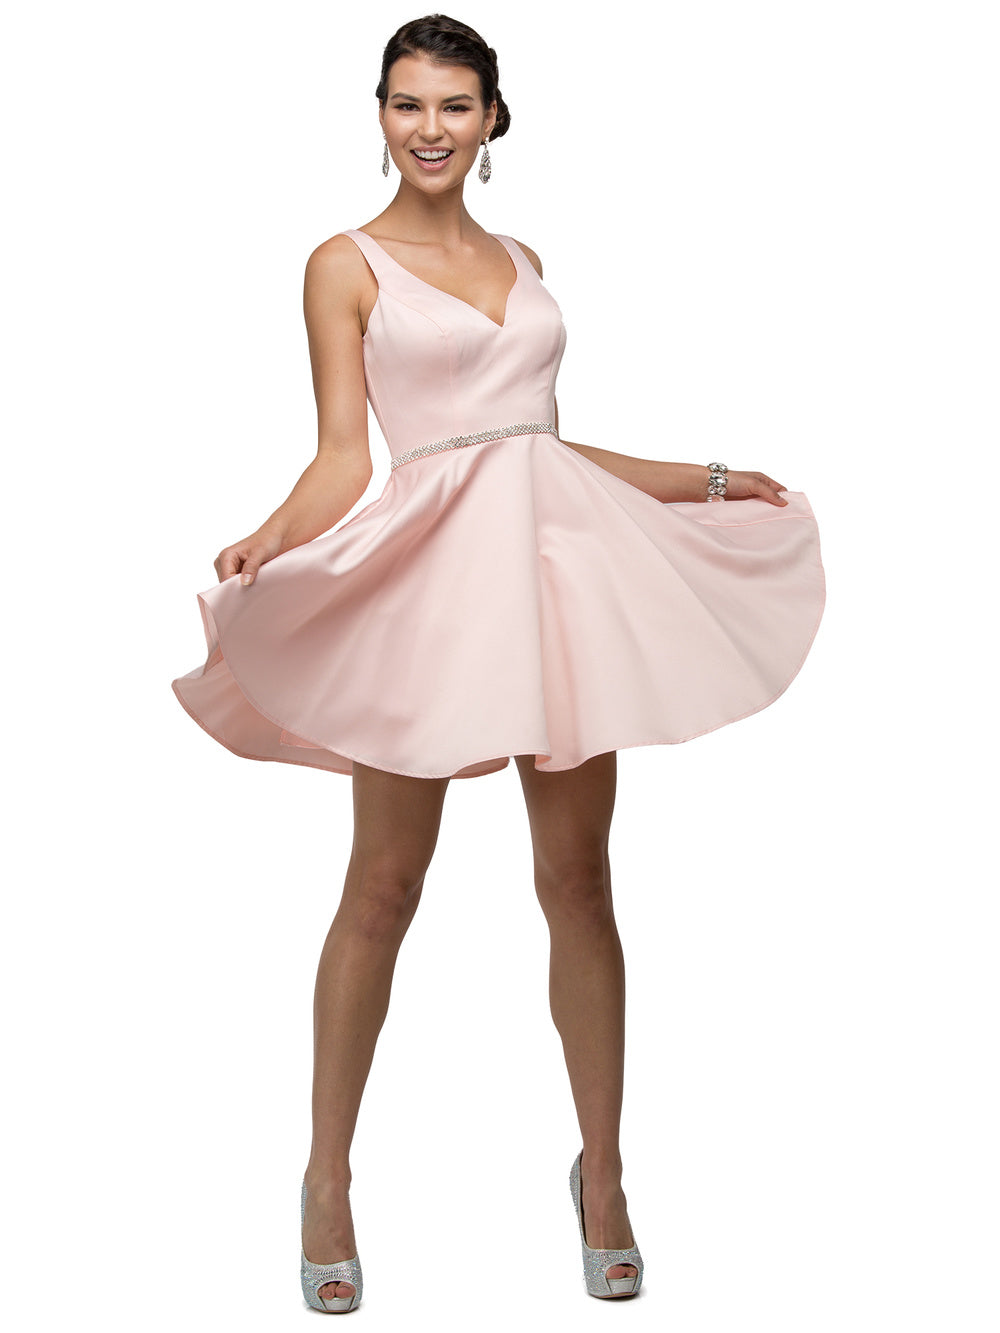 Dancing Queen DQ 9504 - Short Satin Homecoming Dress with V-Neck, Rhinestone Belt & Pockets - Diggz Prom